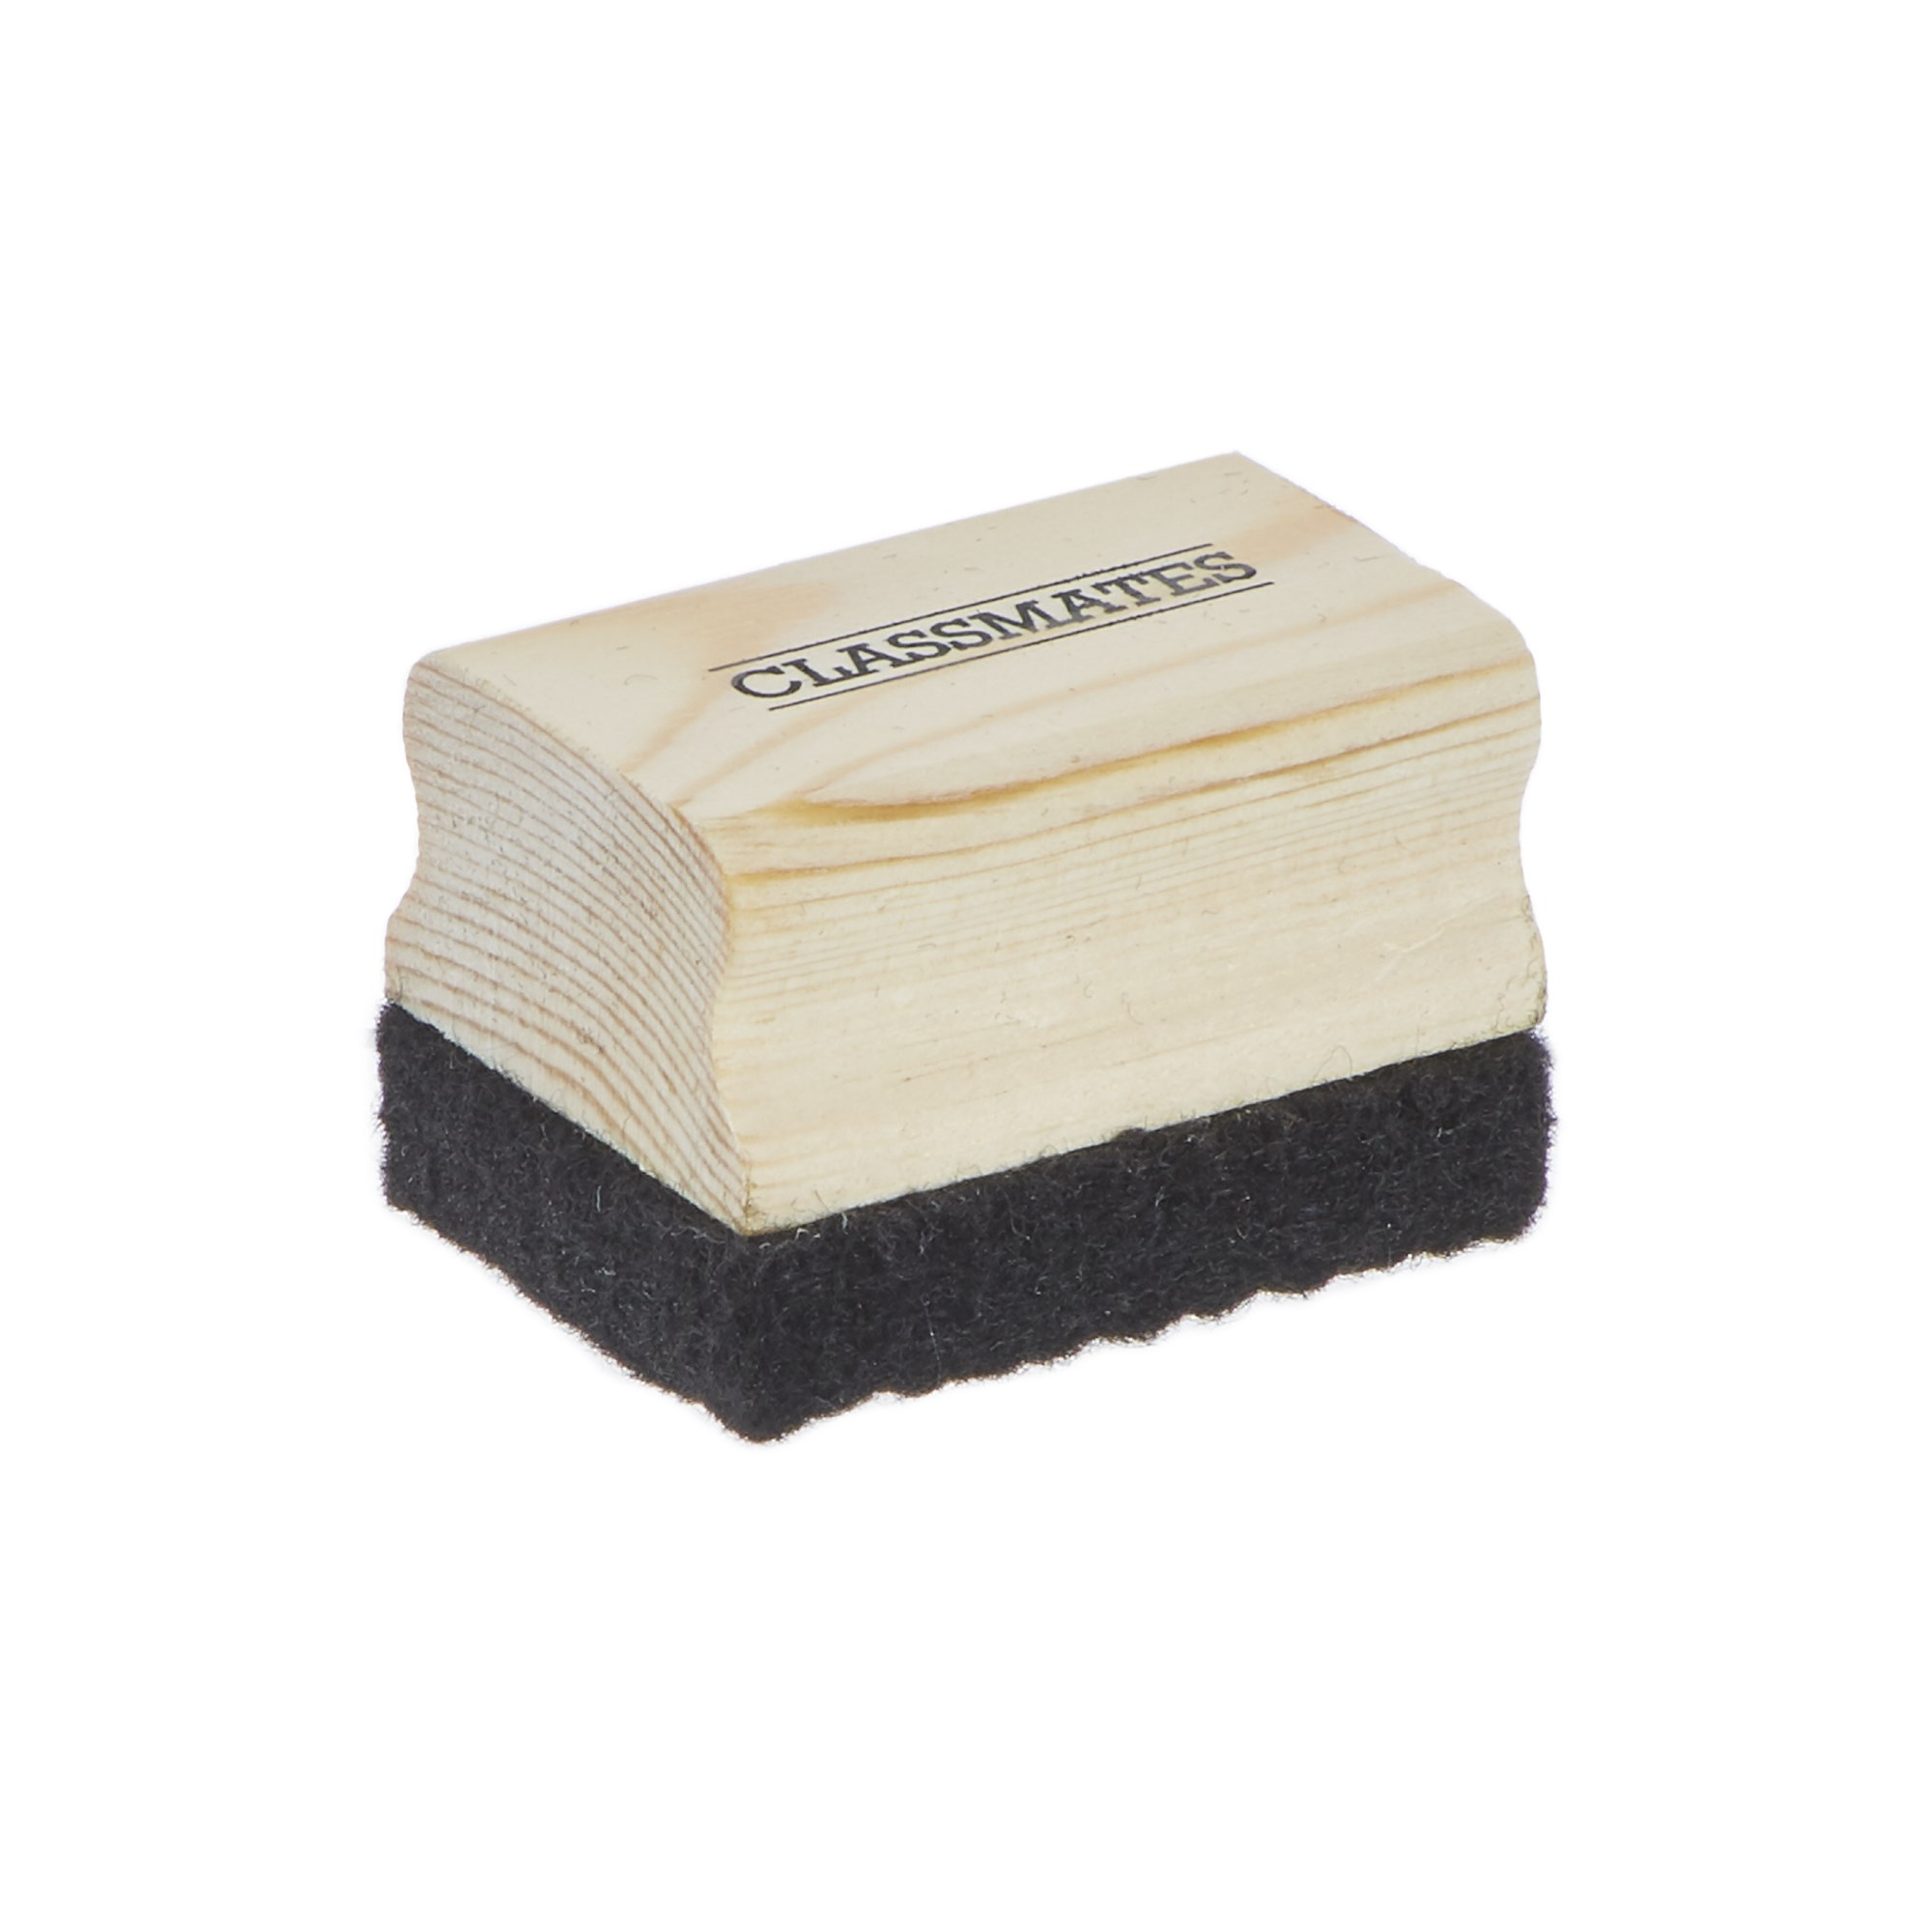 Classmates Mini Whiteboard Eraser - Pack of 30